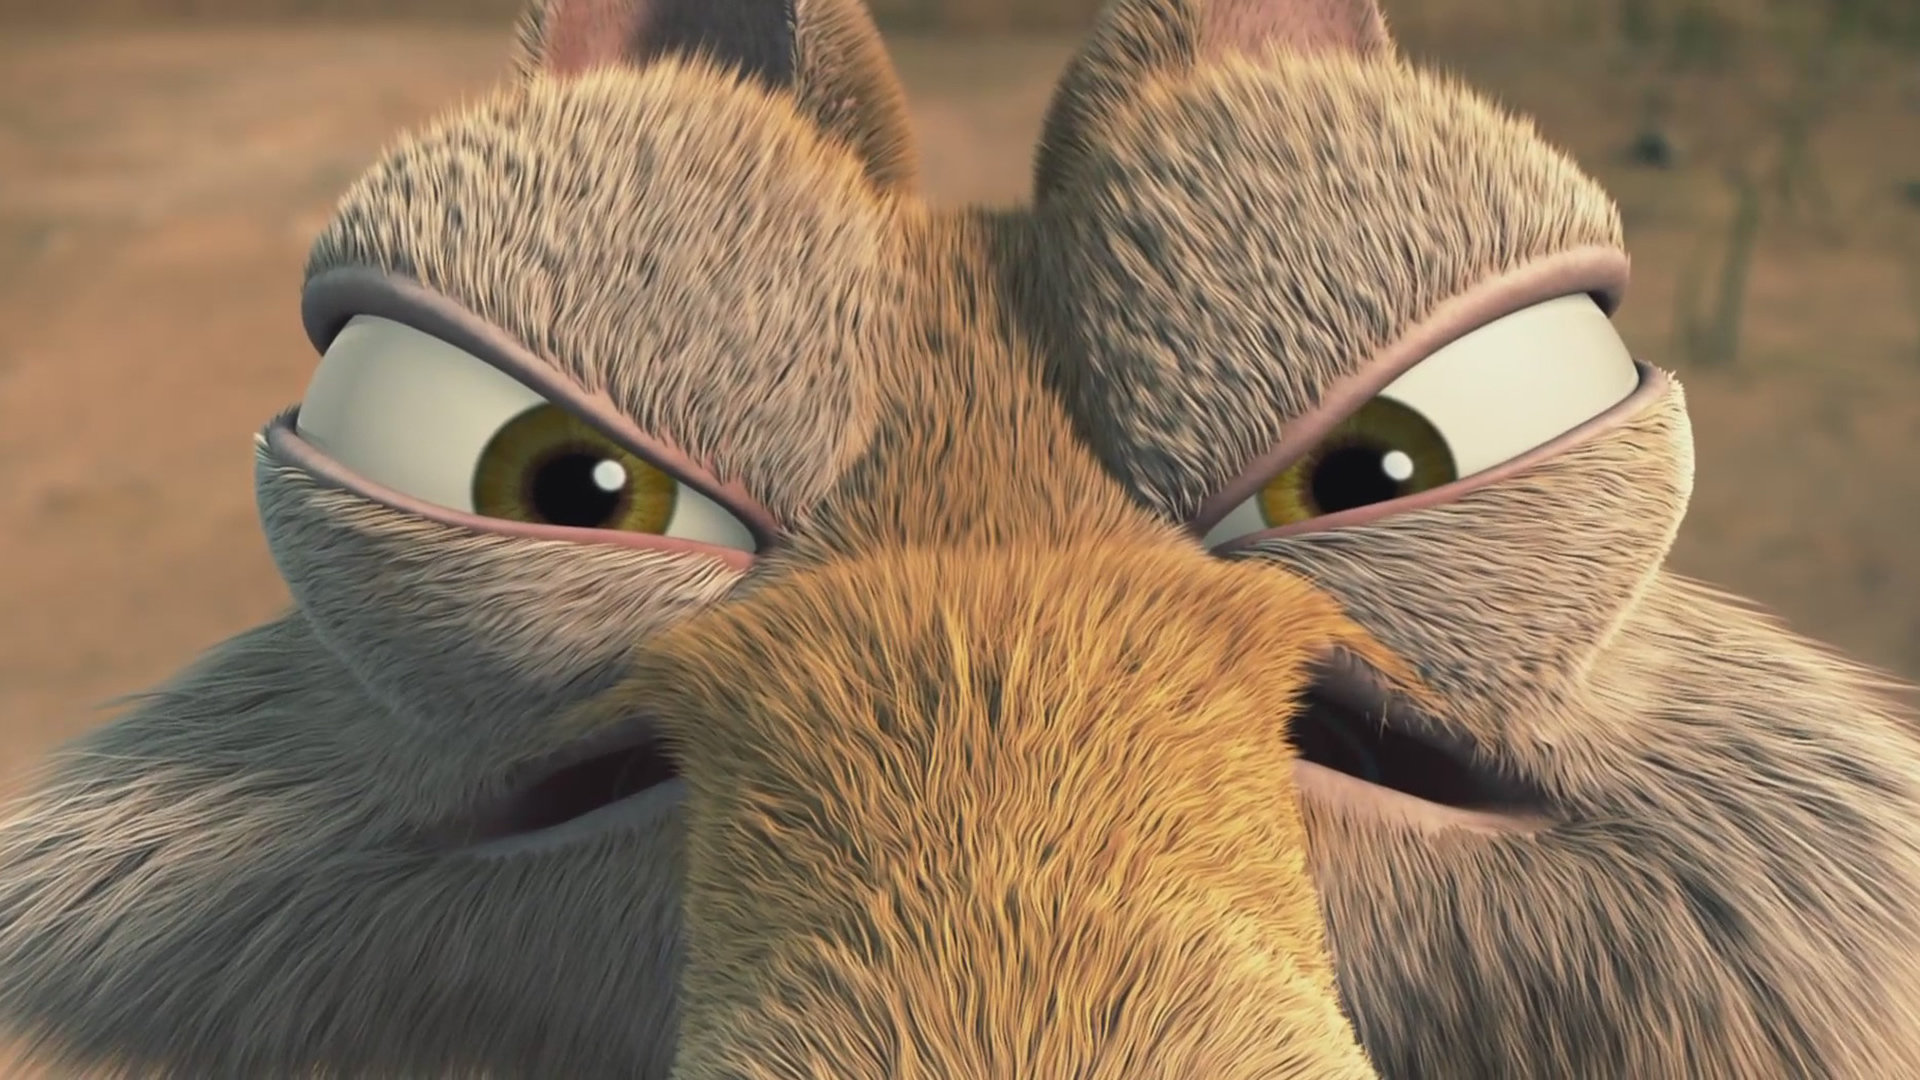 Ice Age: Continental Drift Wallpaper and Background Image